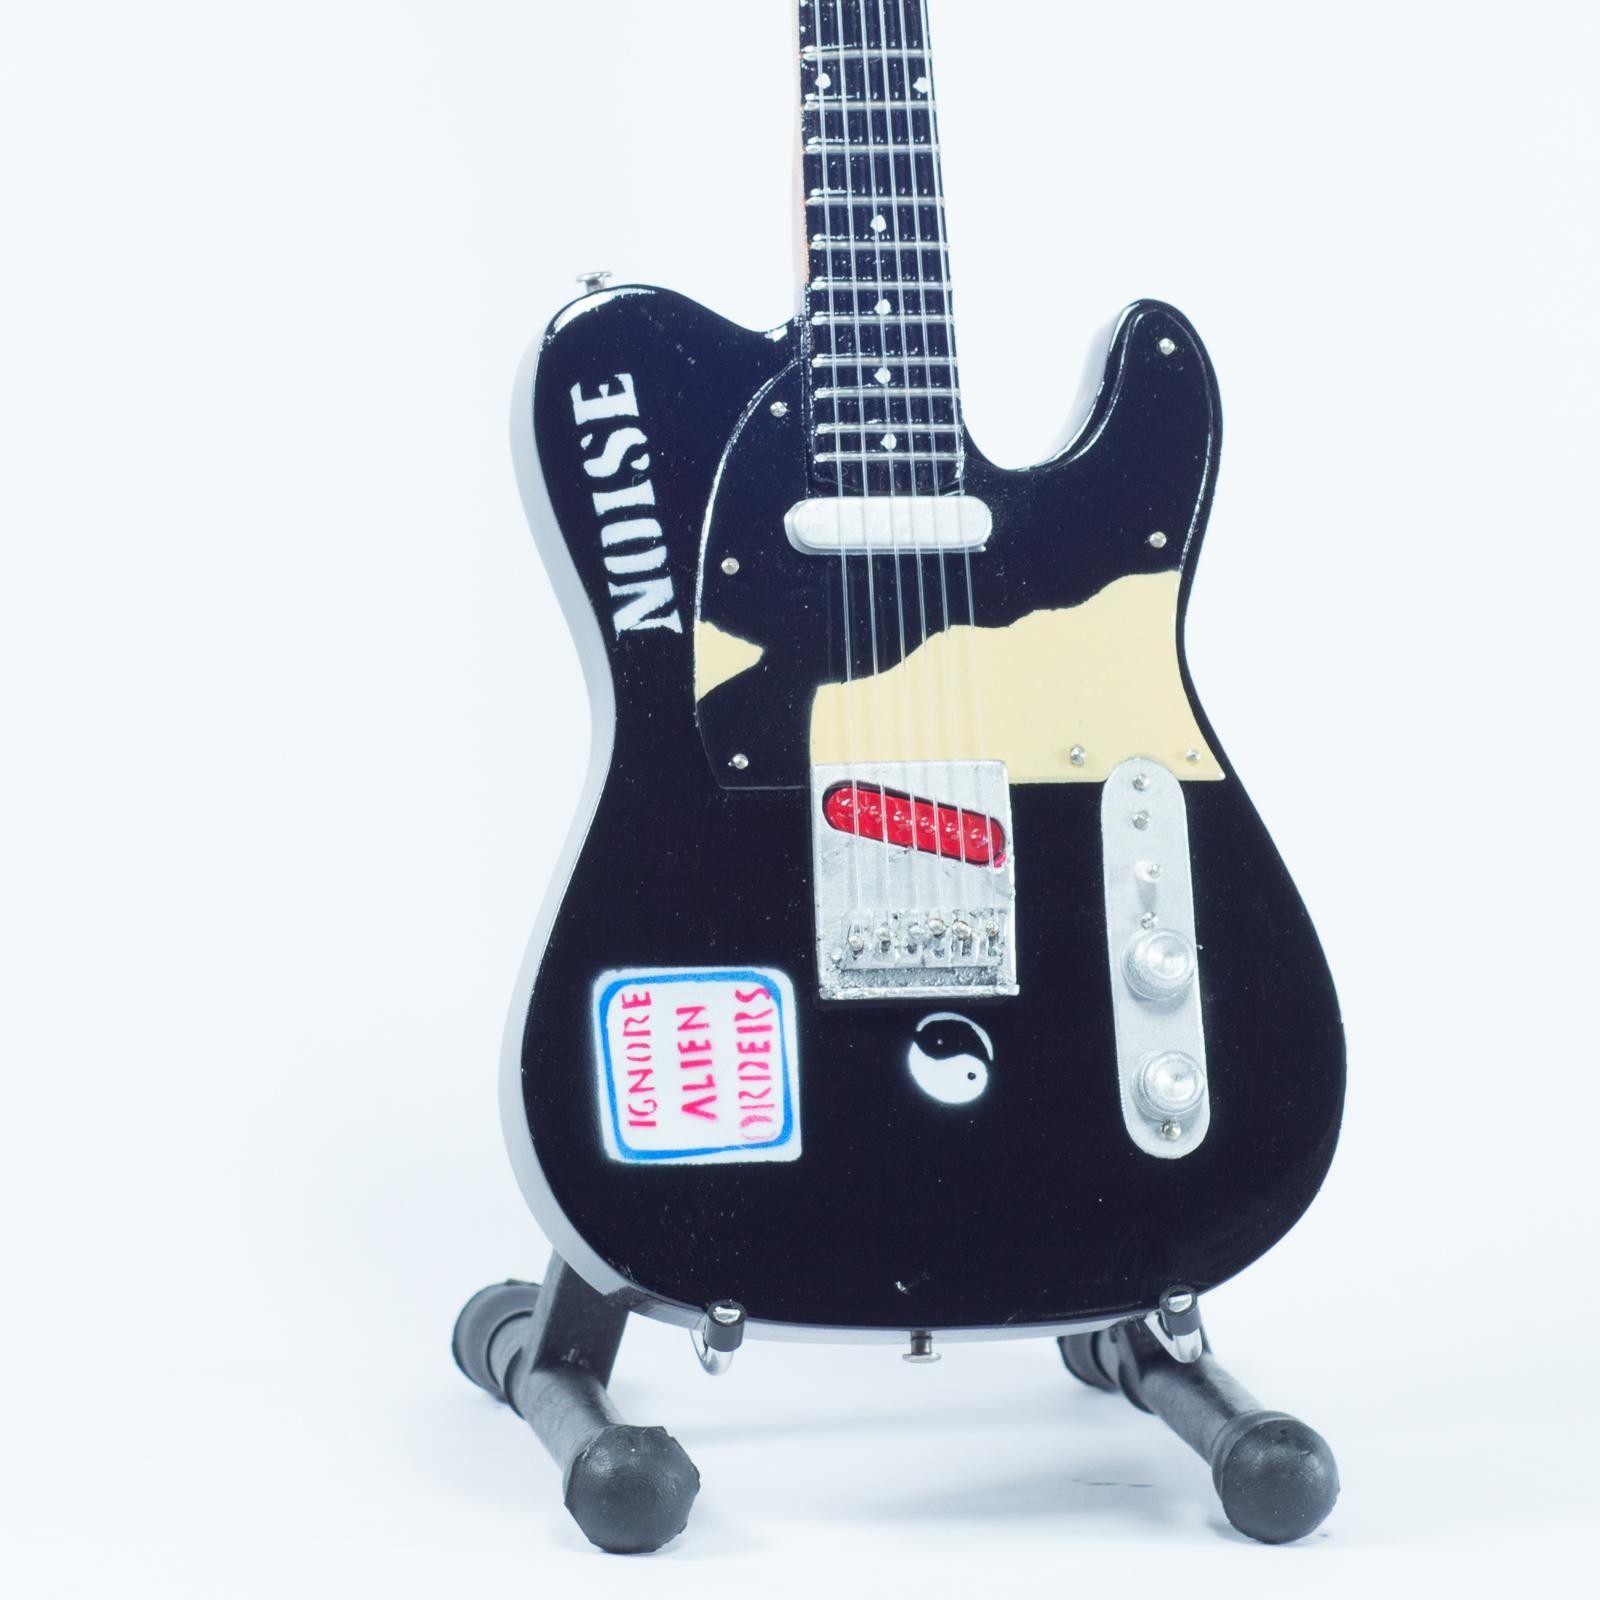 Mini Guitarra De Colección Estilo The Clash - Joe Strummer